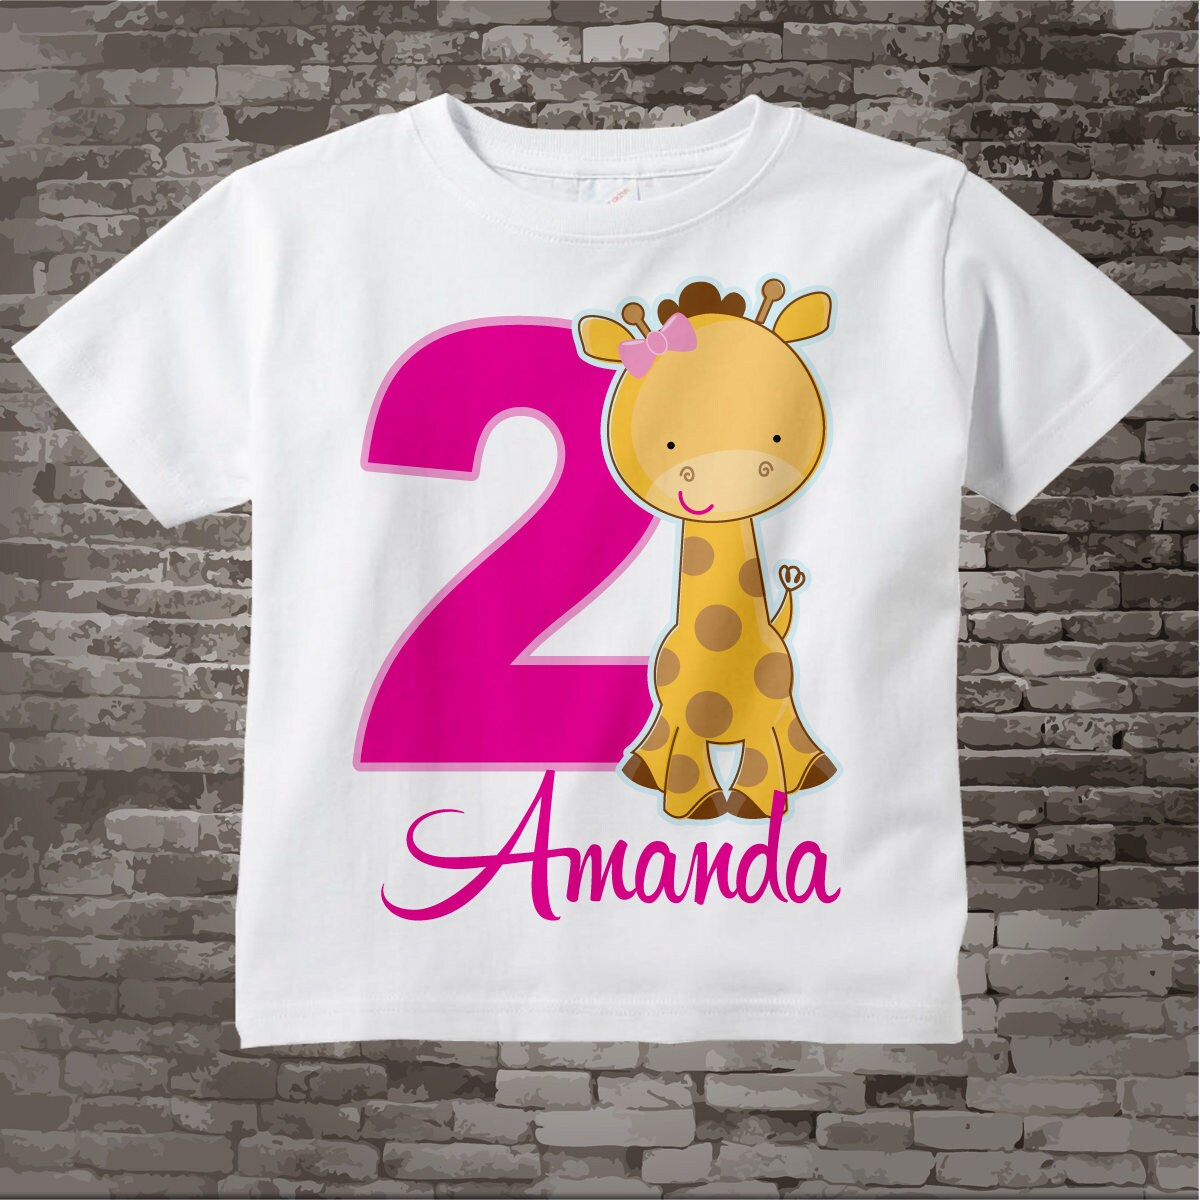 c865e5a9 Personalized Girl's Second Birthday Giraffe Tee Shirt or Onesie, 2nd  Birthday Giraffe tee, Safari Theme, Zoo t-shirt 07292014f. gallery photo ...